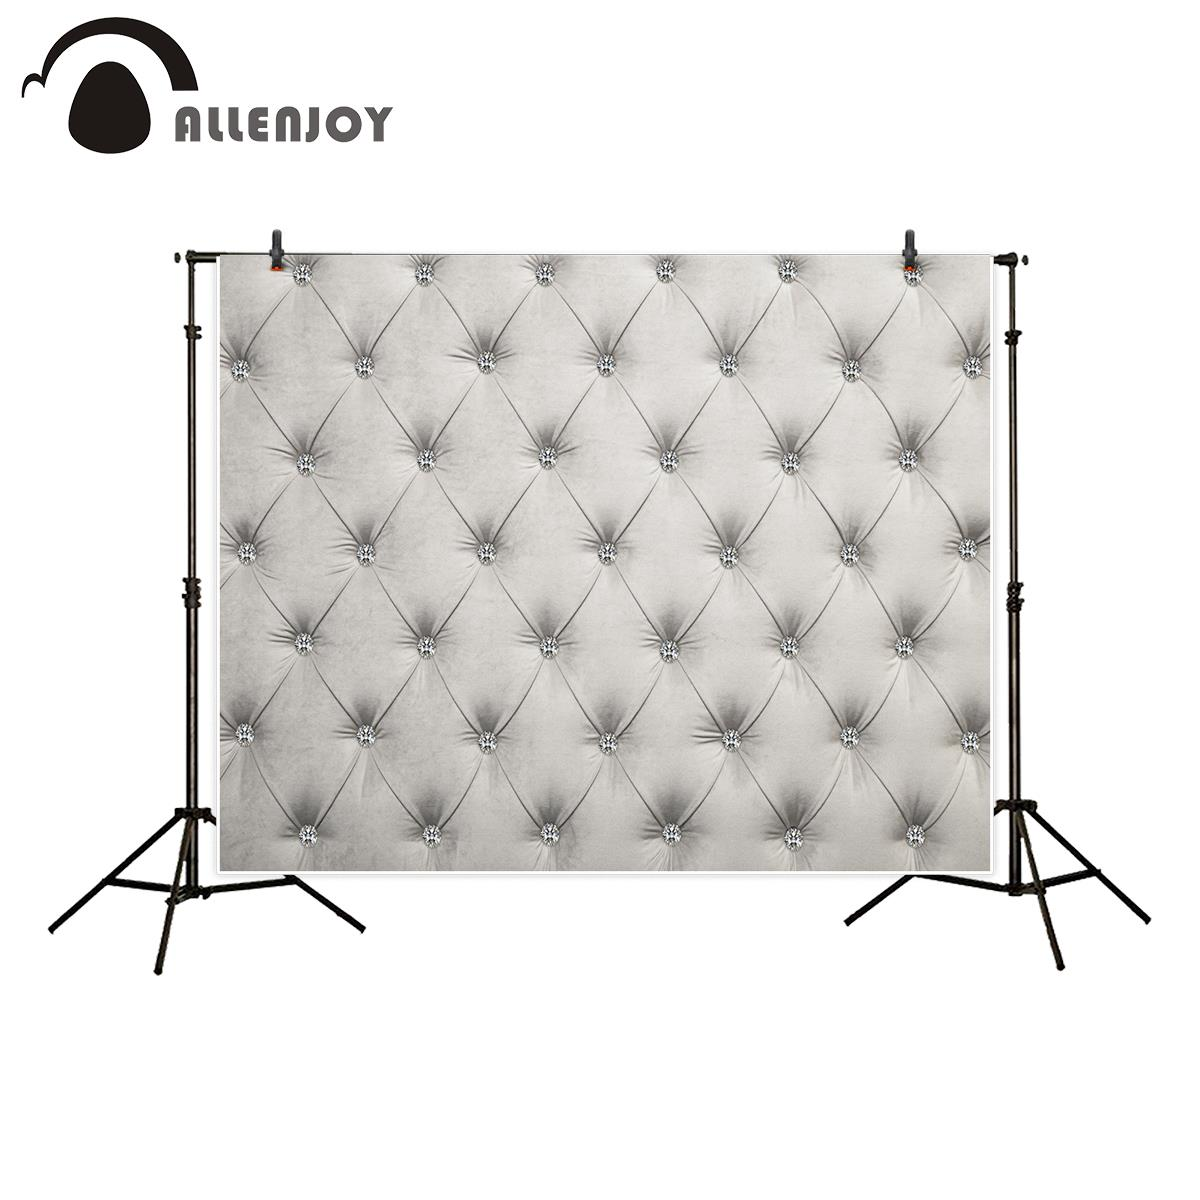 Allenjoy backgrounds for photo studio diamond tuft luxury headboard backdrop photocall new photobooth customize photographic